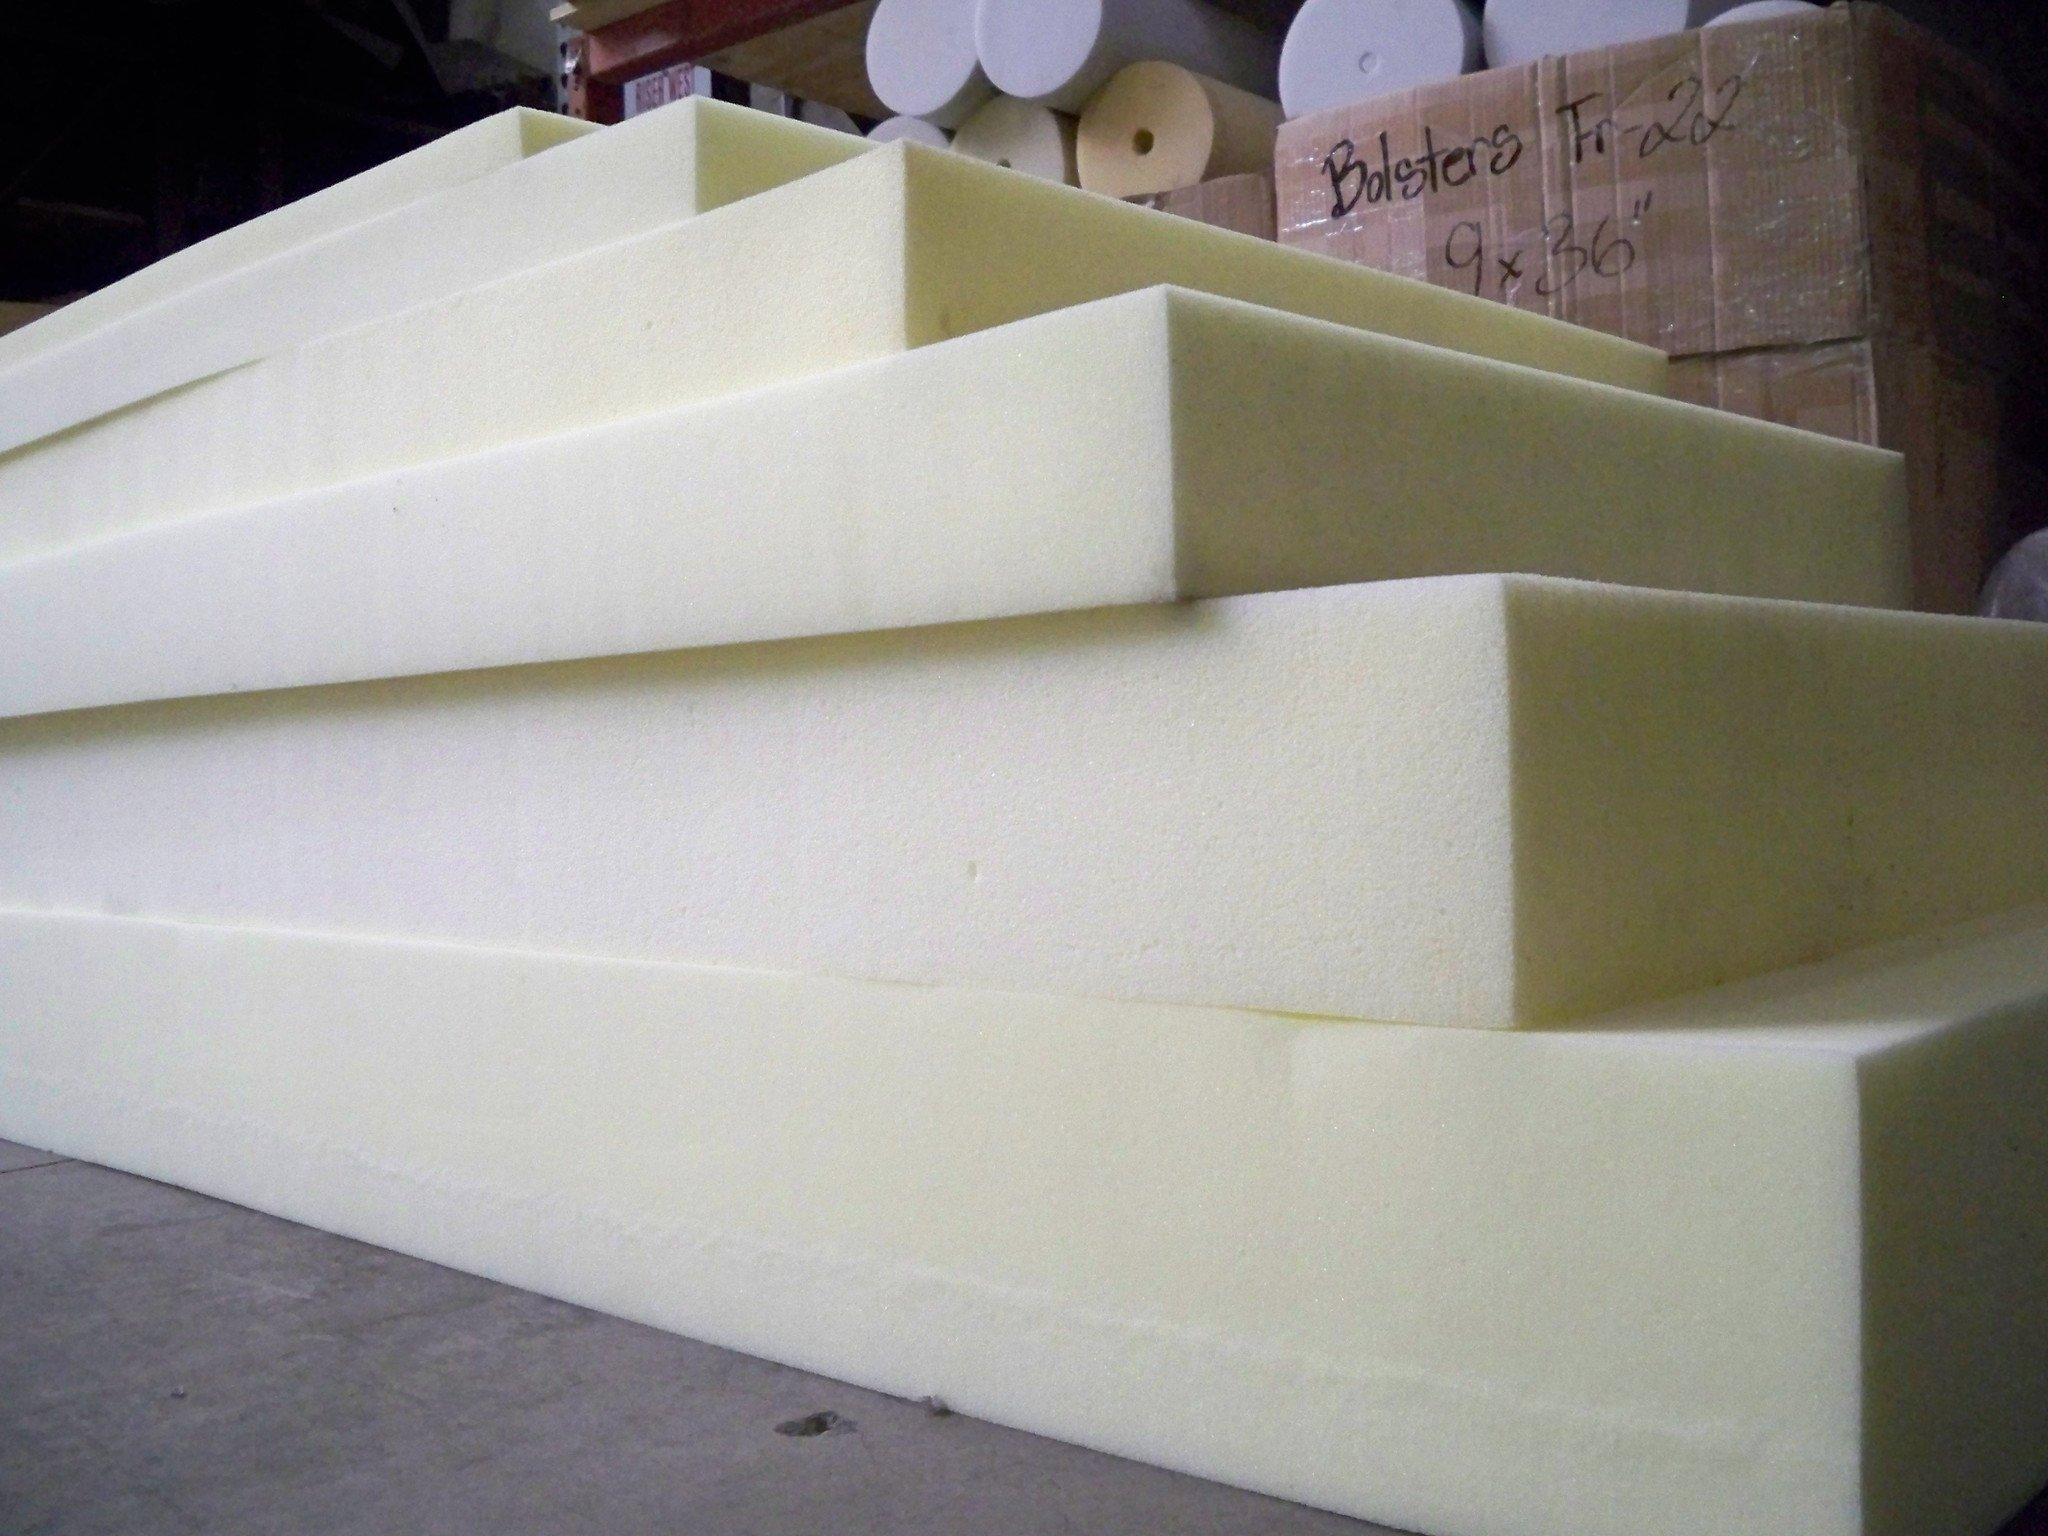 High Density Upholstery Foam for Best Cushions Material Ideas: High Density Foam Upholstery | Types Of Upholstery Foam | High Density Upholstery Foam